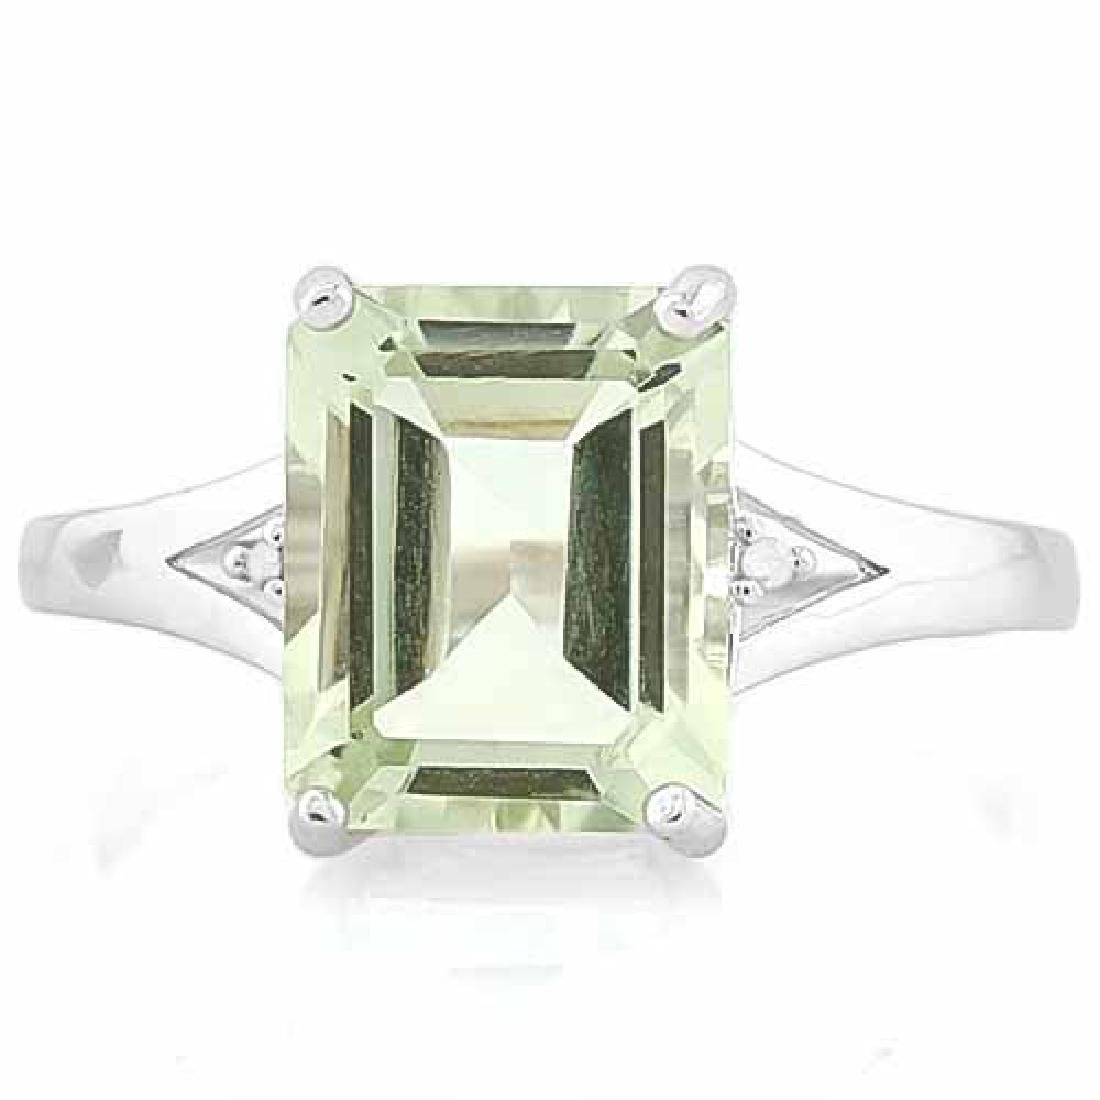 2 1/2 CARAT GREEN AMETHYST & DIAMOND 925 STERLING SILVE